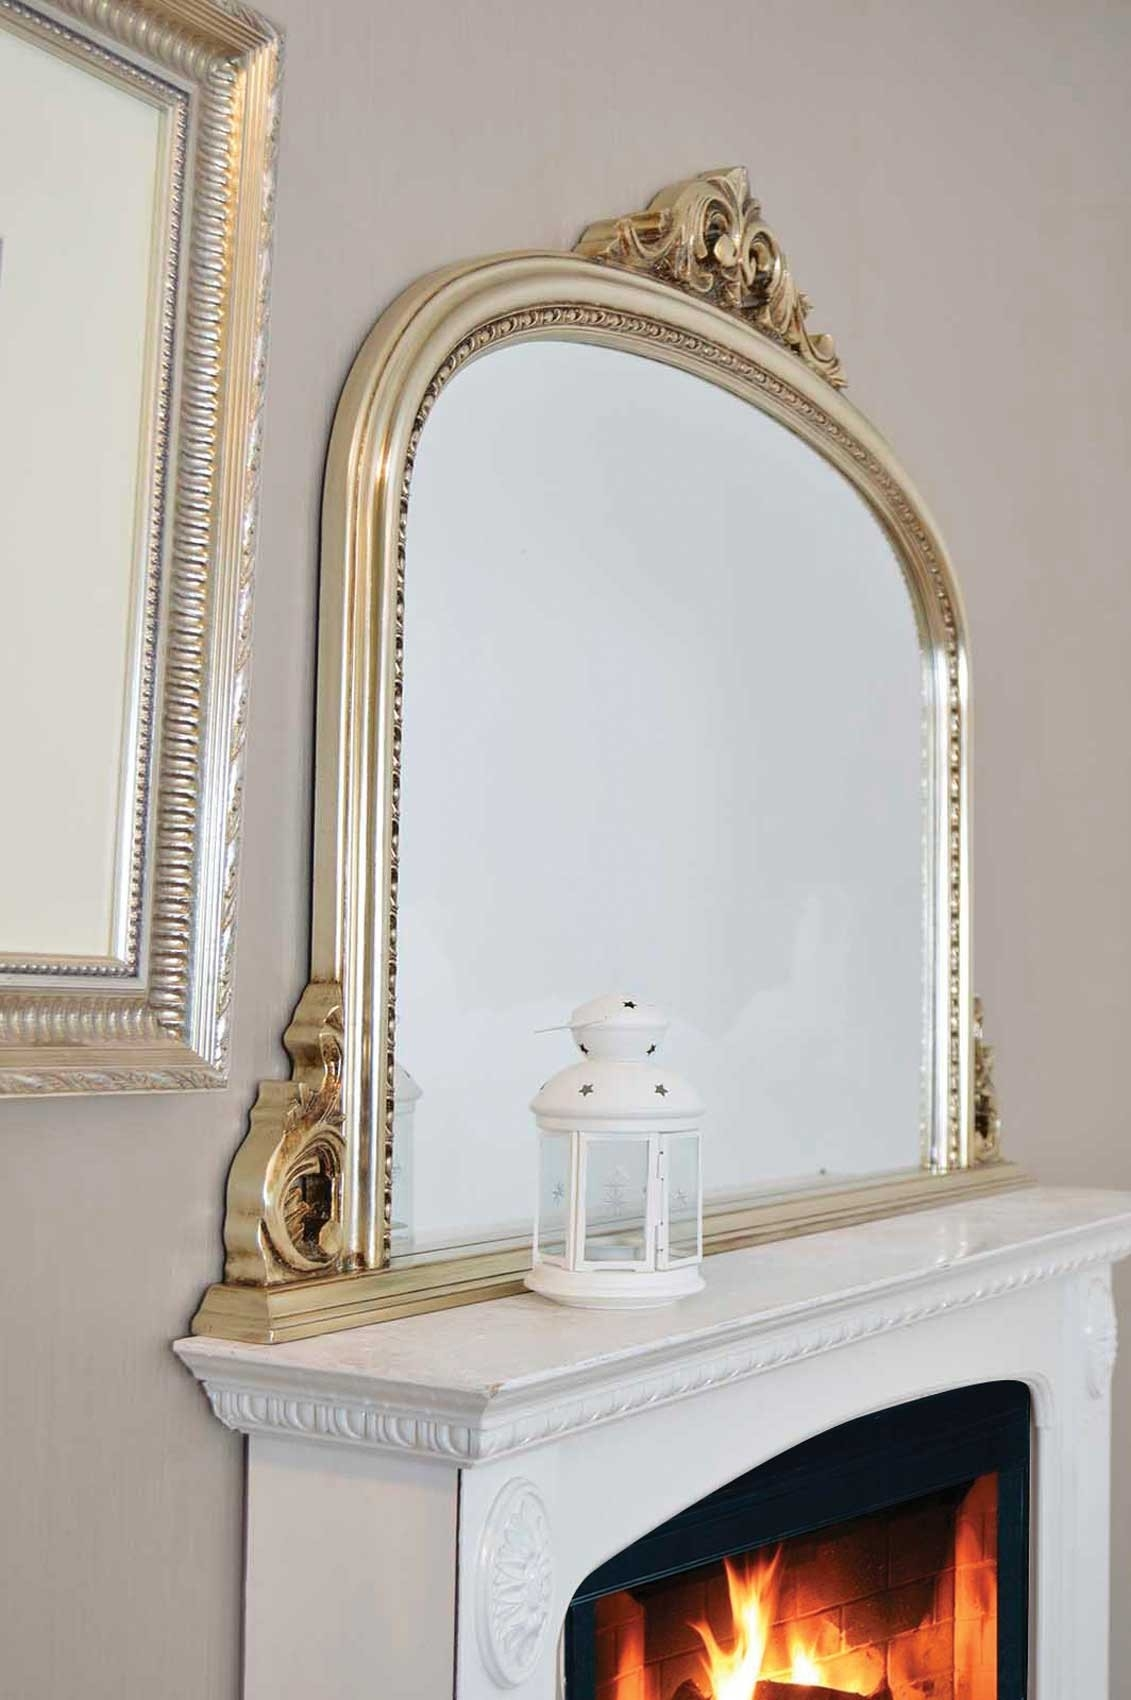 Large Champagne Silver Antique Over Mantle Wall Mirror 4ft2 X 3ft Inside Large Overmantle Mirrors (Image 9 of 15)